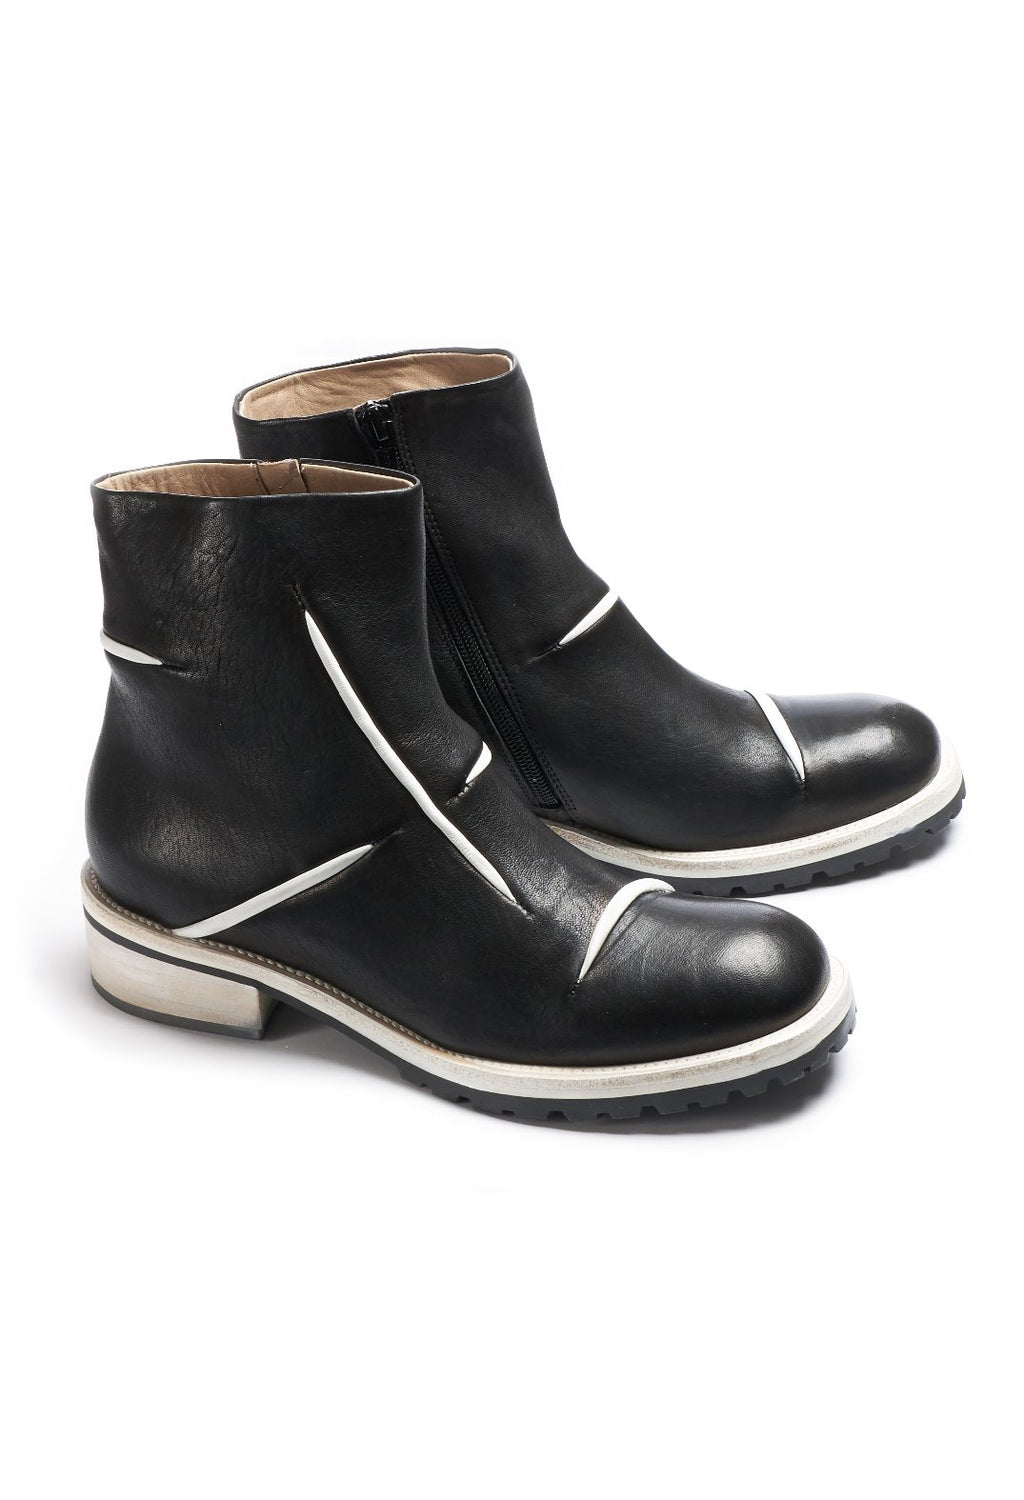 Leather Ankle Boots in Black / White